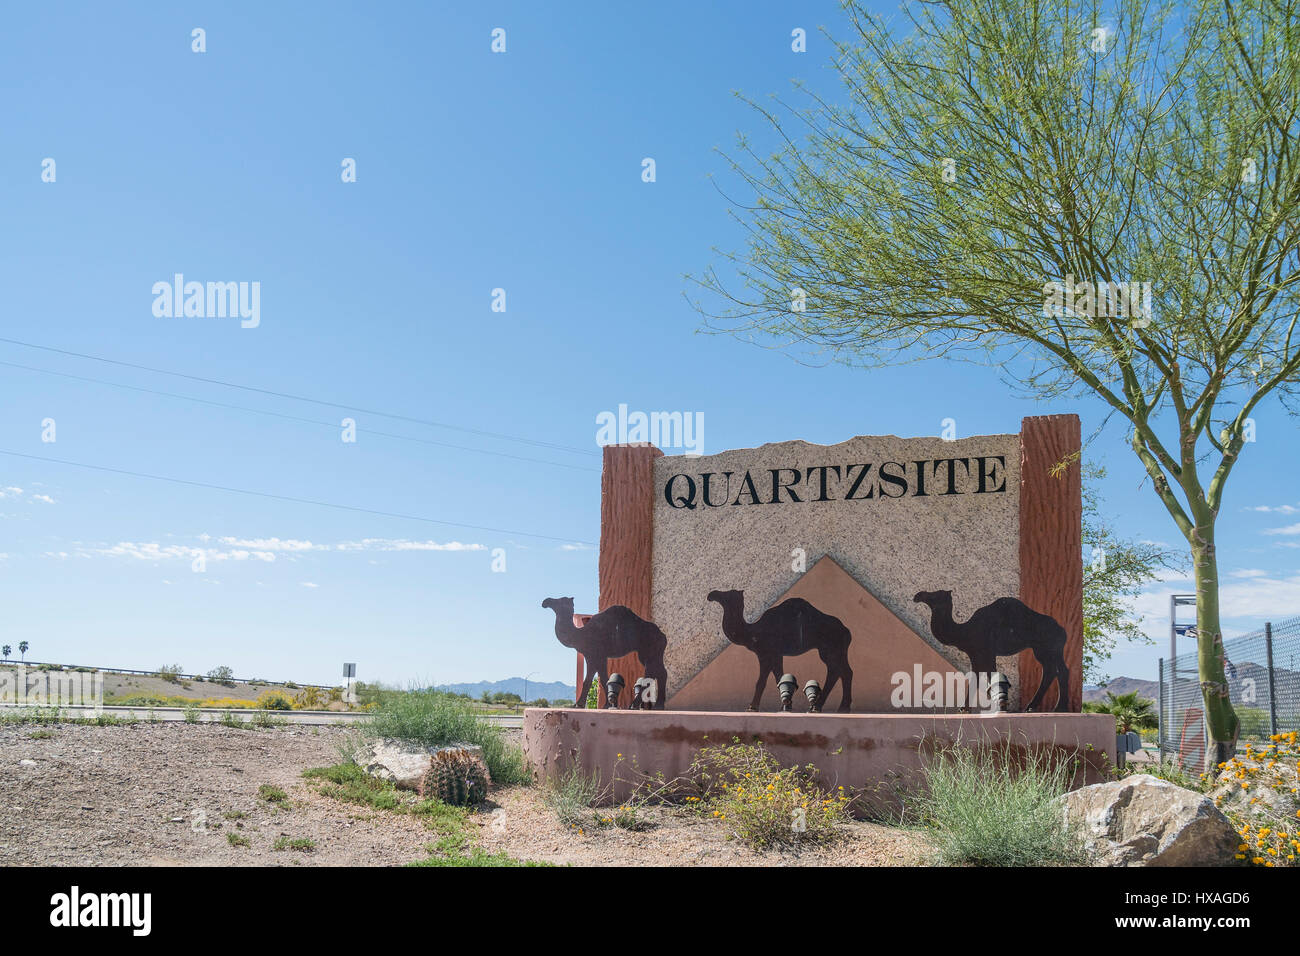 Quartzsite welcoming sign on the town limits made out of stone with three metal camels on the front portion of the - Stock Image